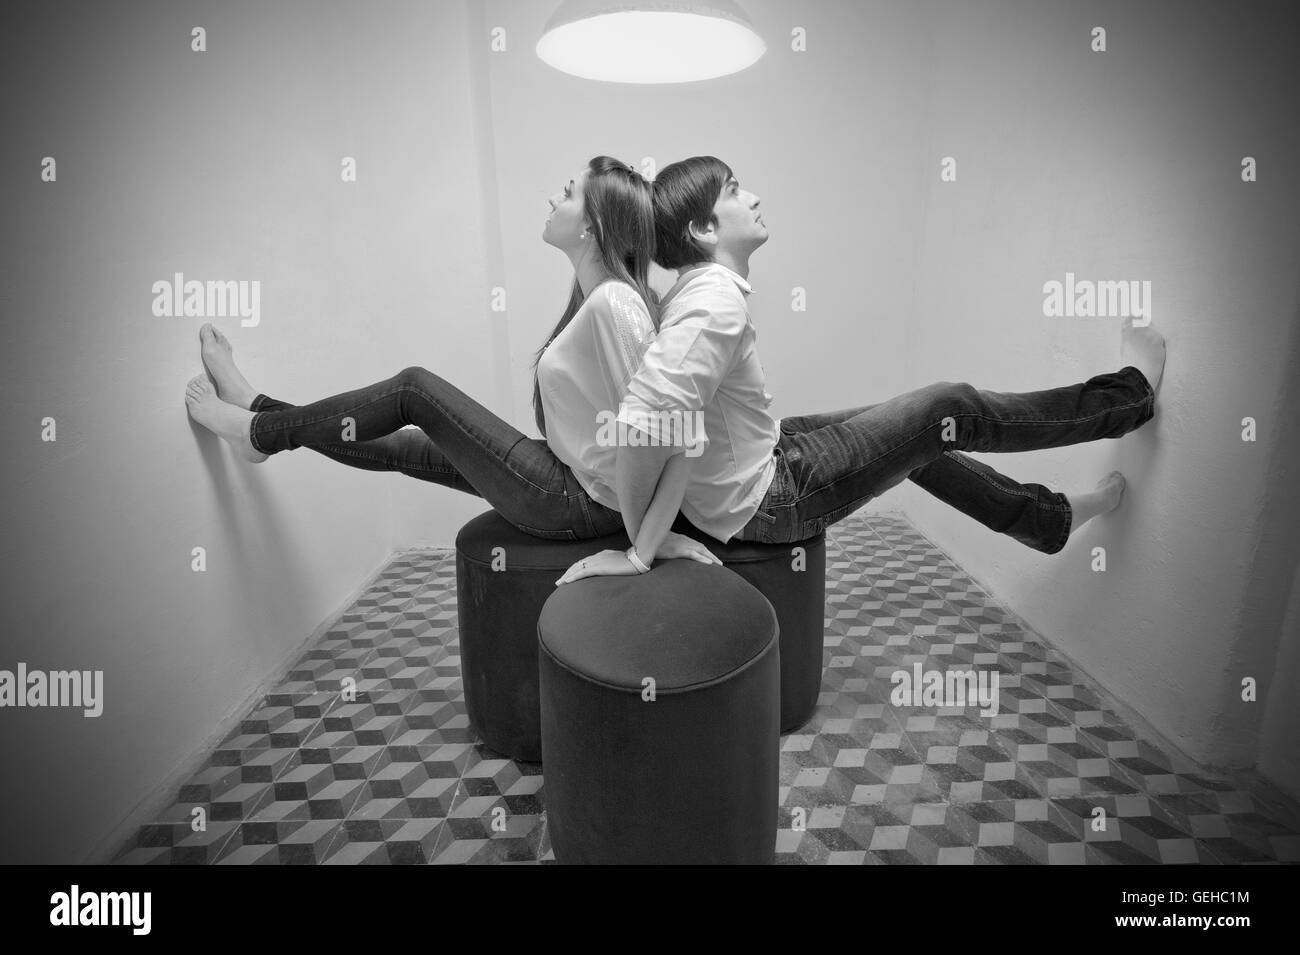 A young couple sit back to back with their feet against the wall in a confined space - Stock Image